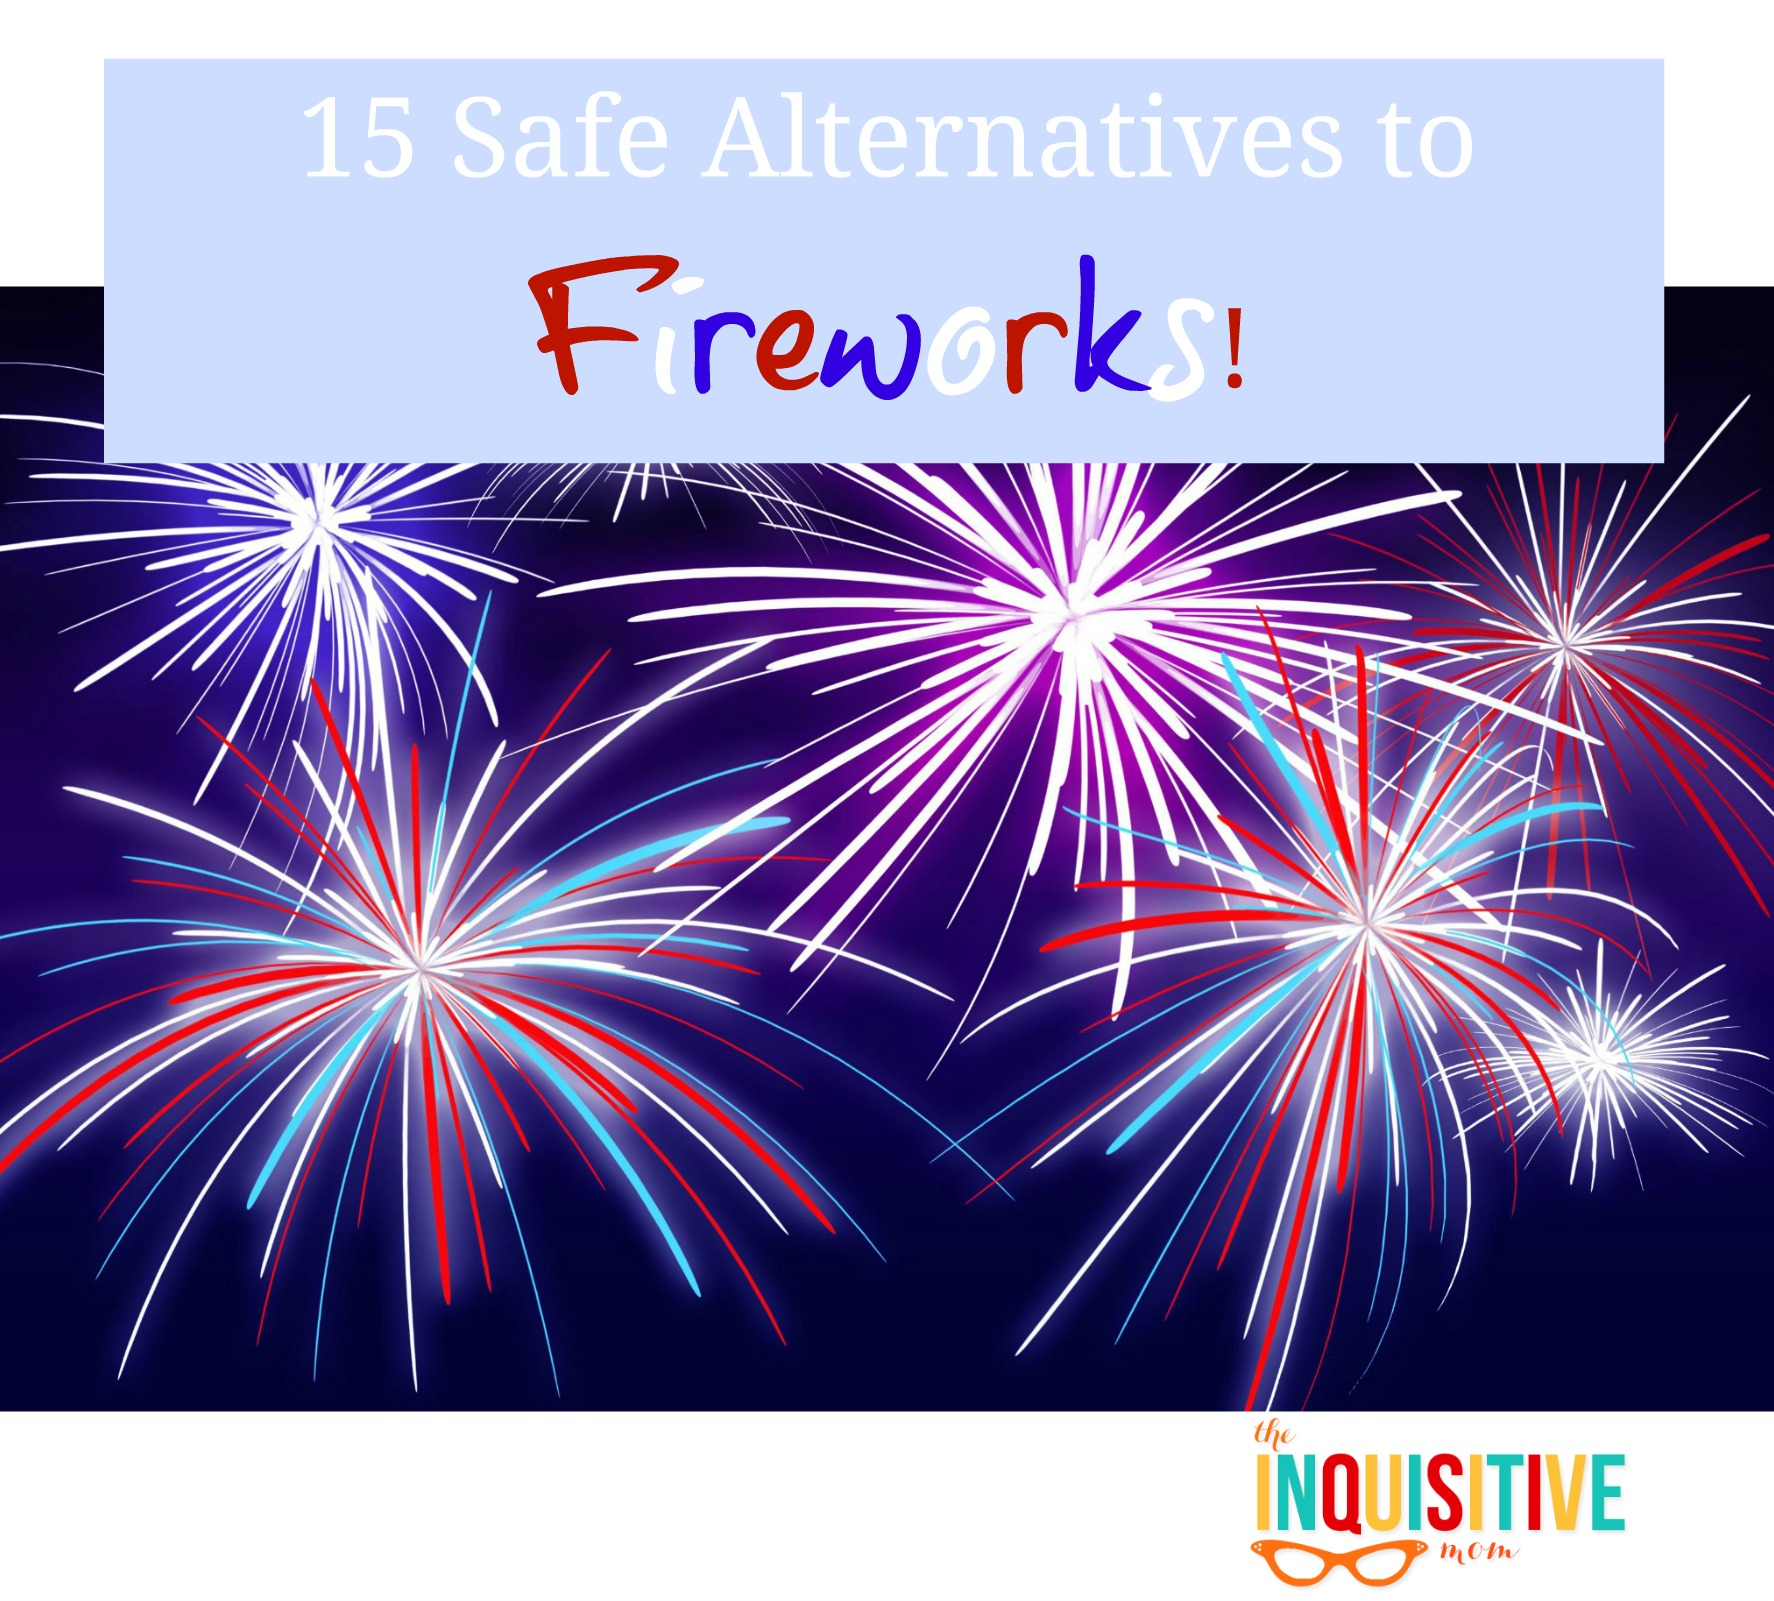 15 Safe Alternative to Fireworks. Too dry for fireworks? Are they banned locally? Build new 4th of July Traditions with these alternatives!